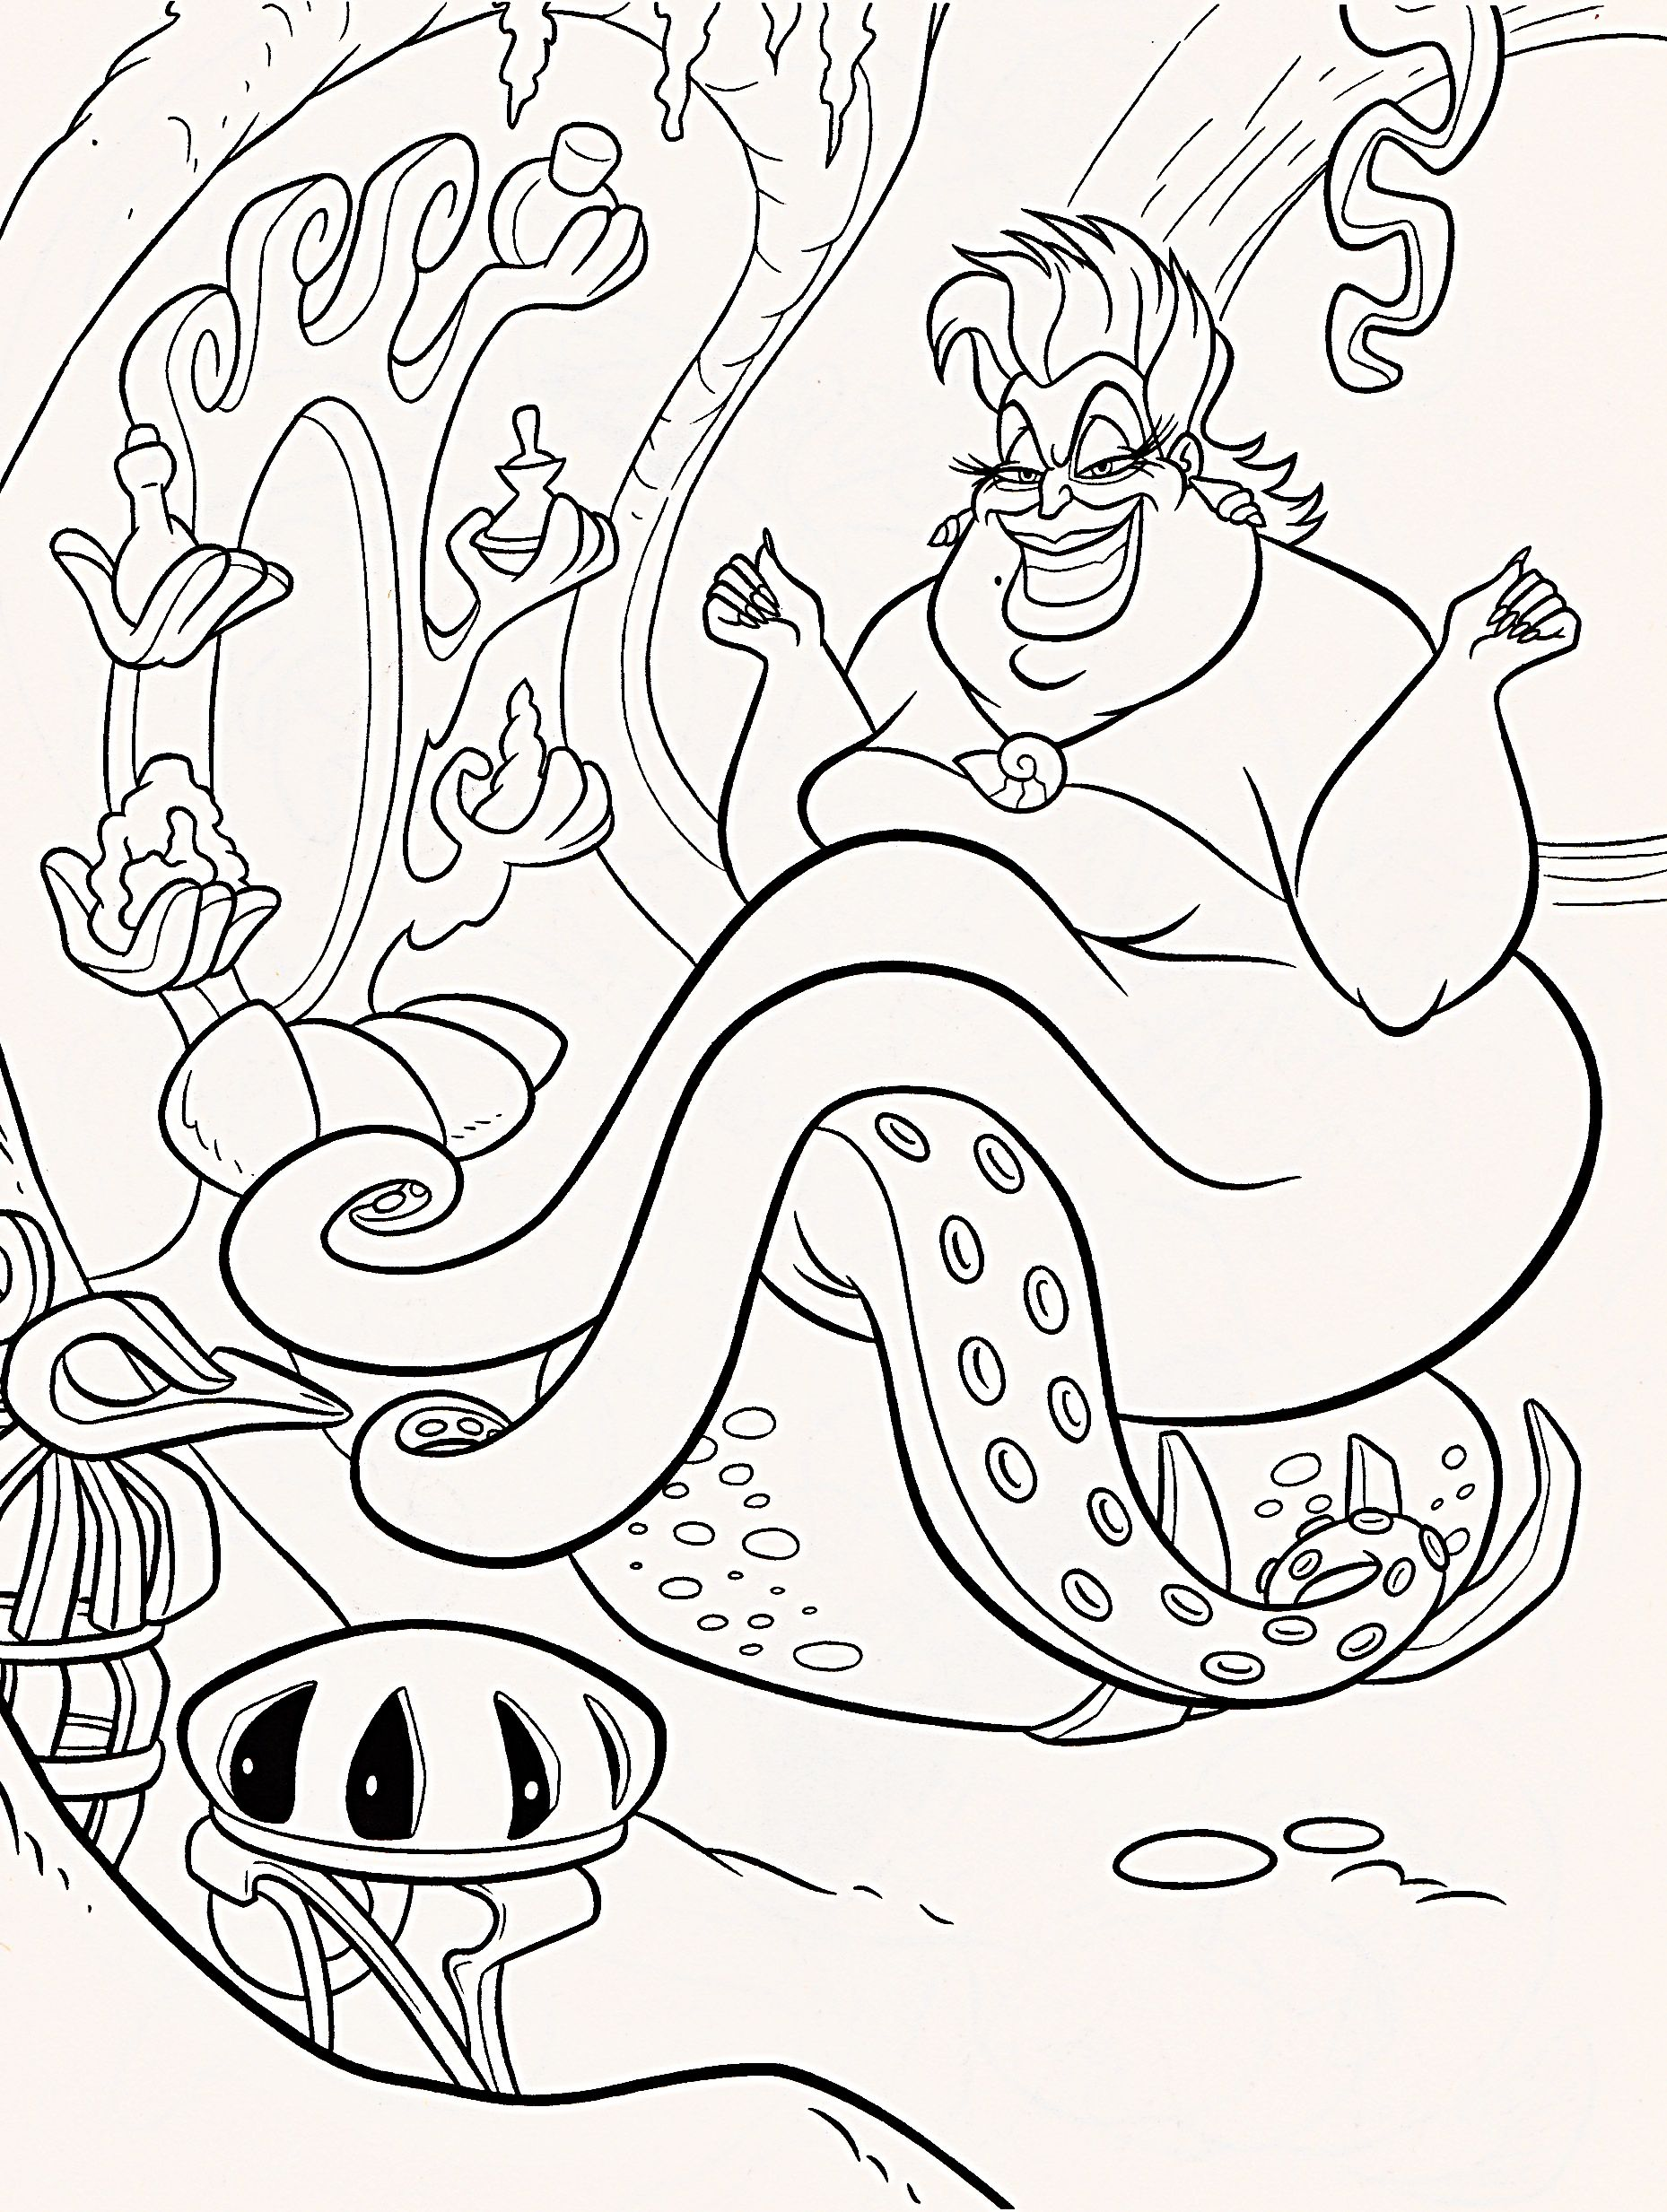 Free Coloring Pages Download Ursula 05 Pinterest Disney Of